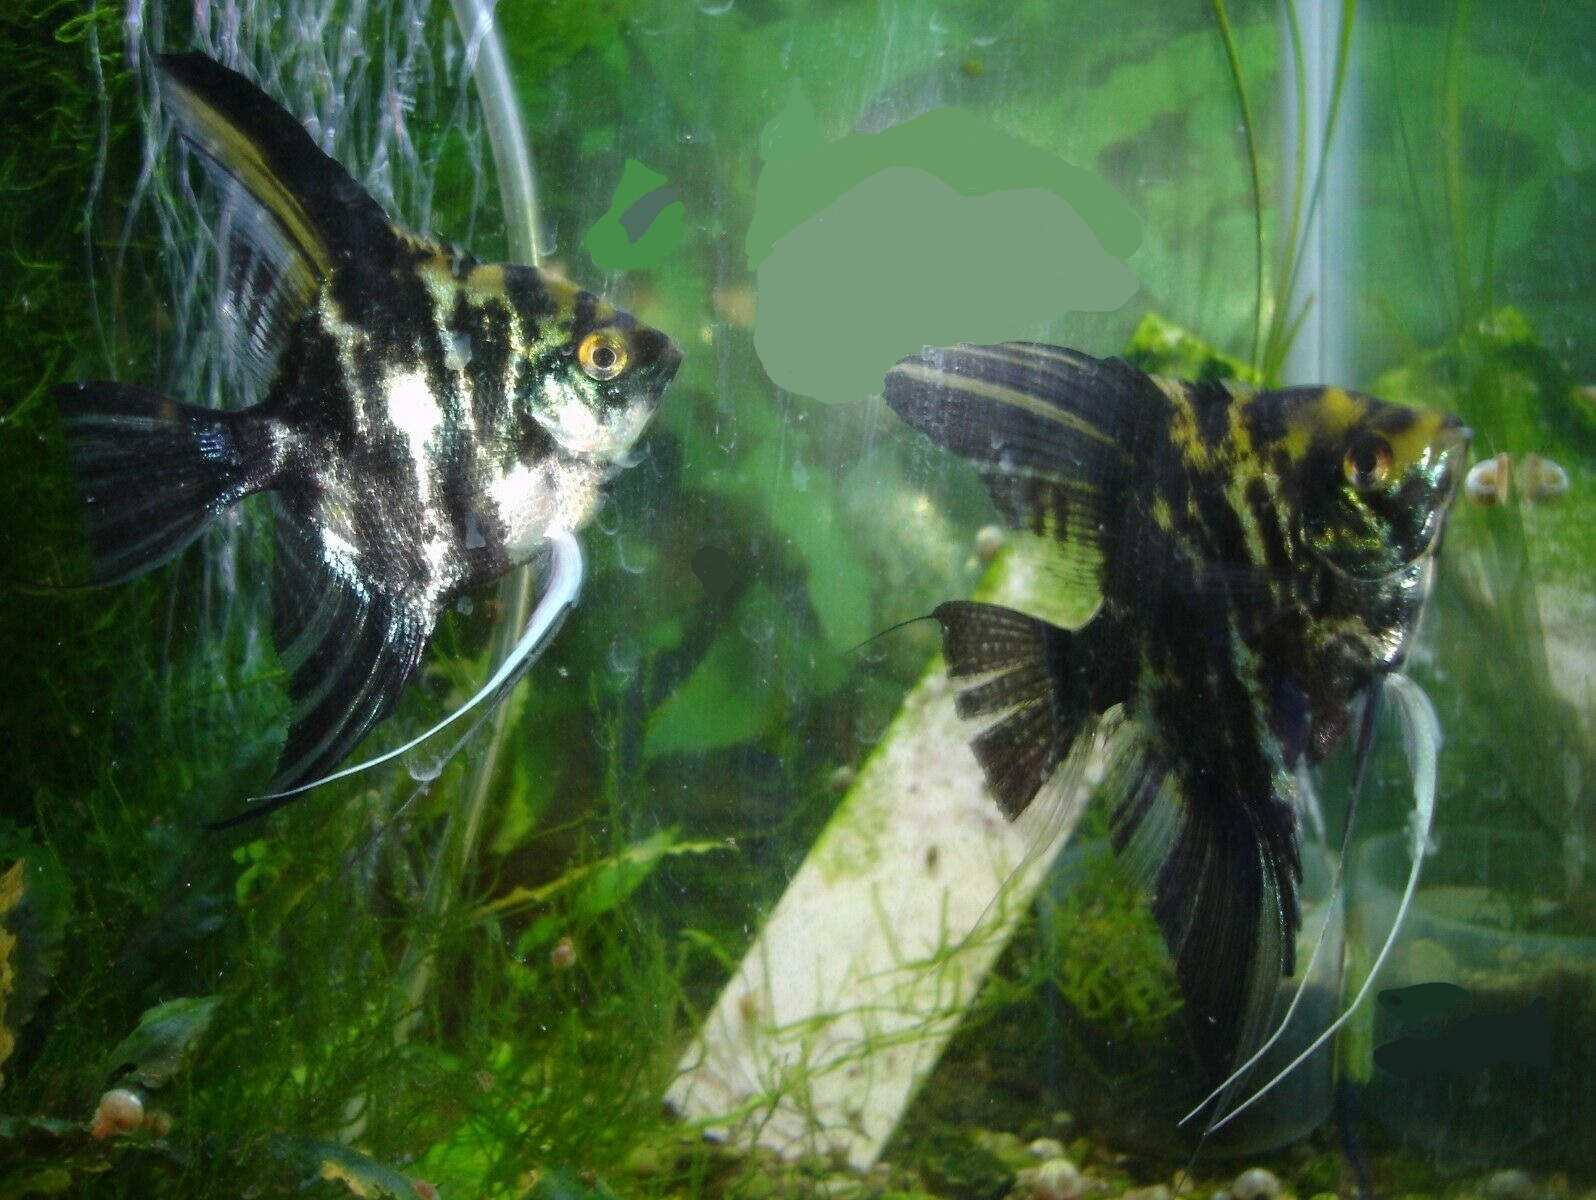 Angelfish, Live Freshwater Aquarium Fish, young breeding pair - Several pairs available - Inquire for more than 1 pair